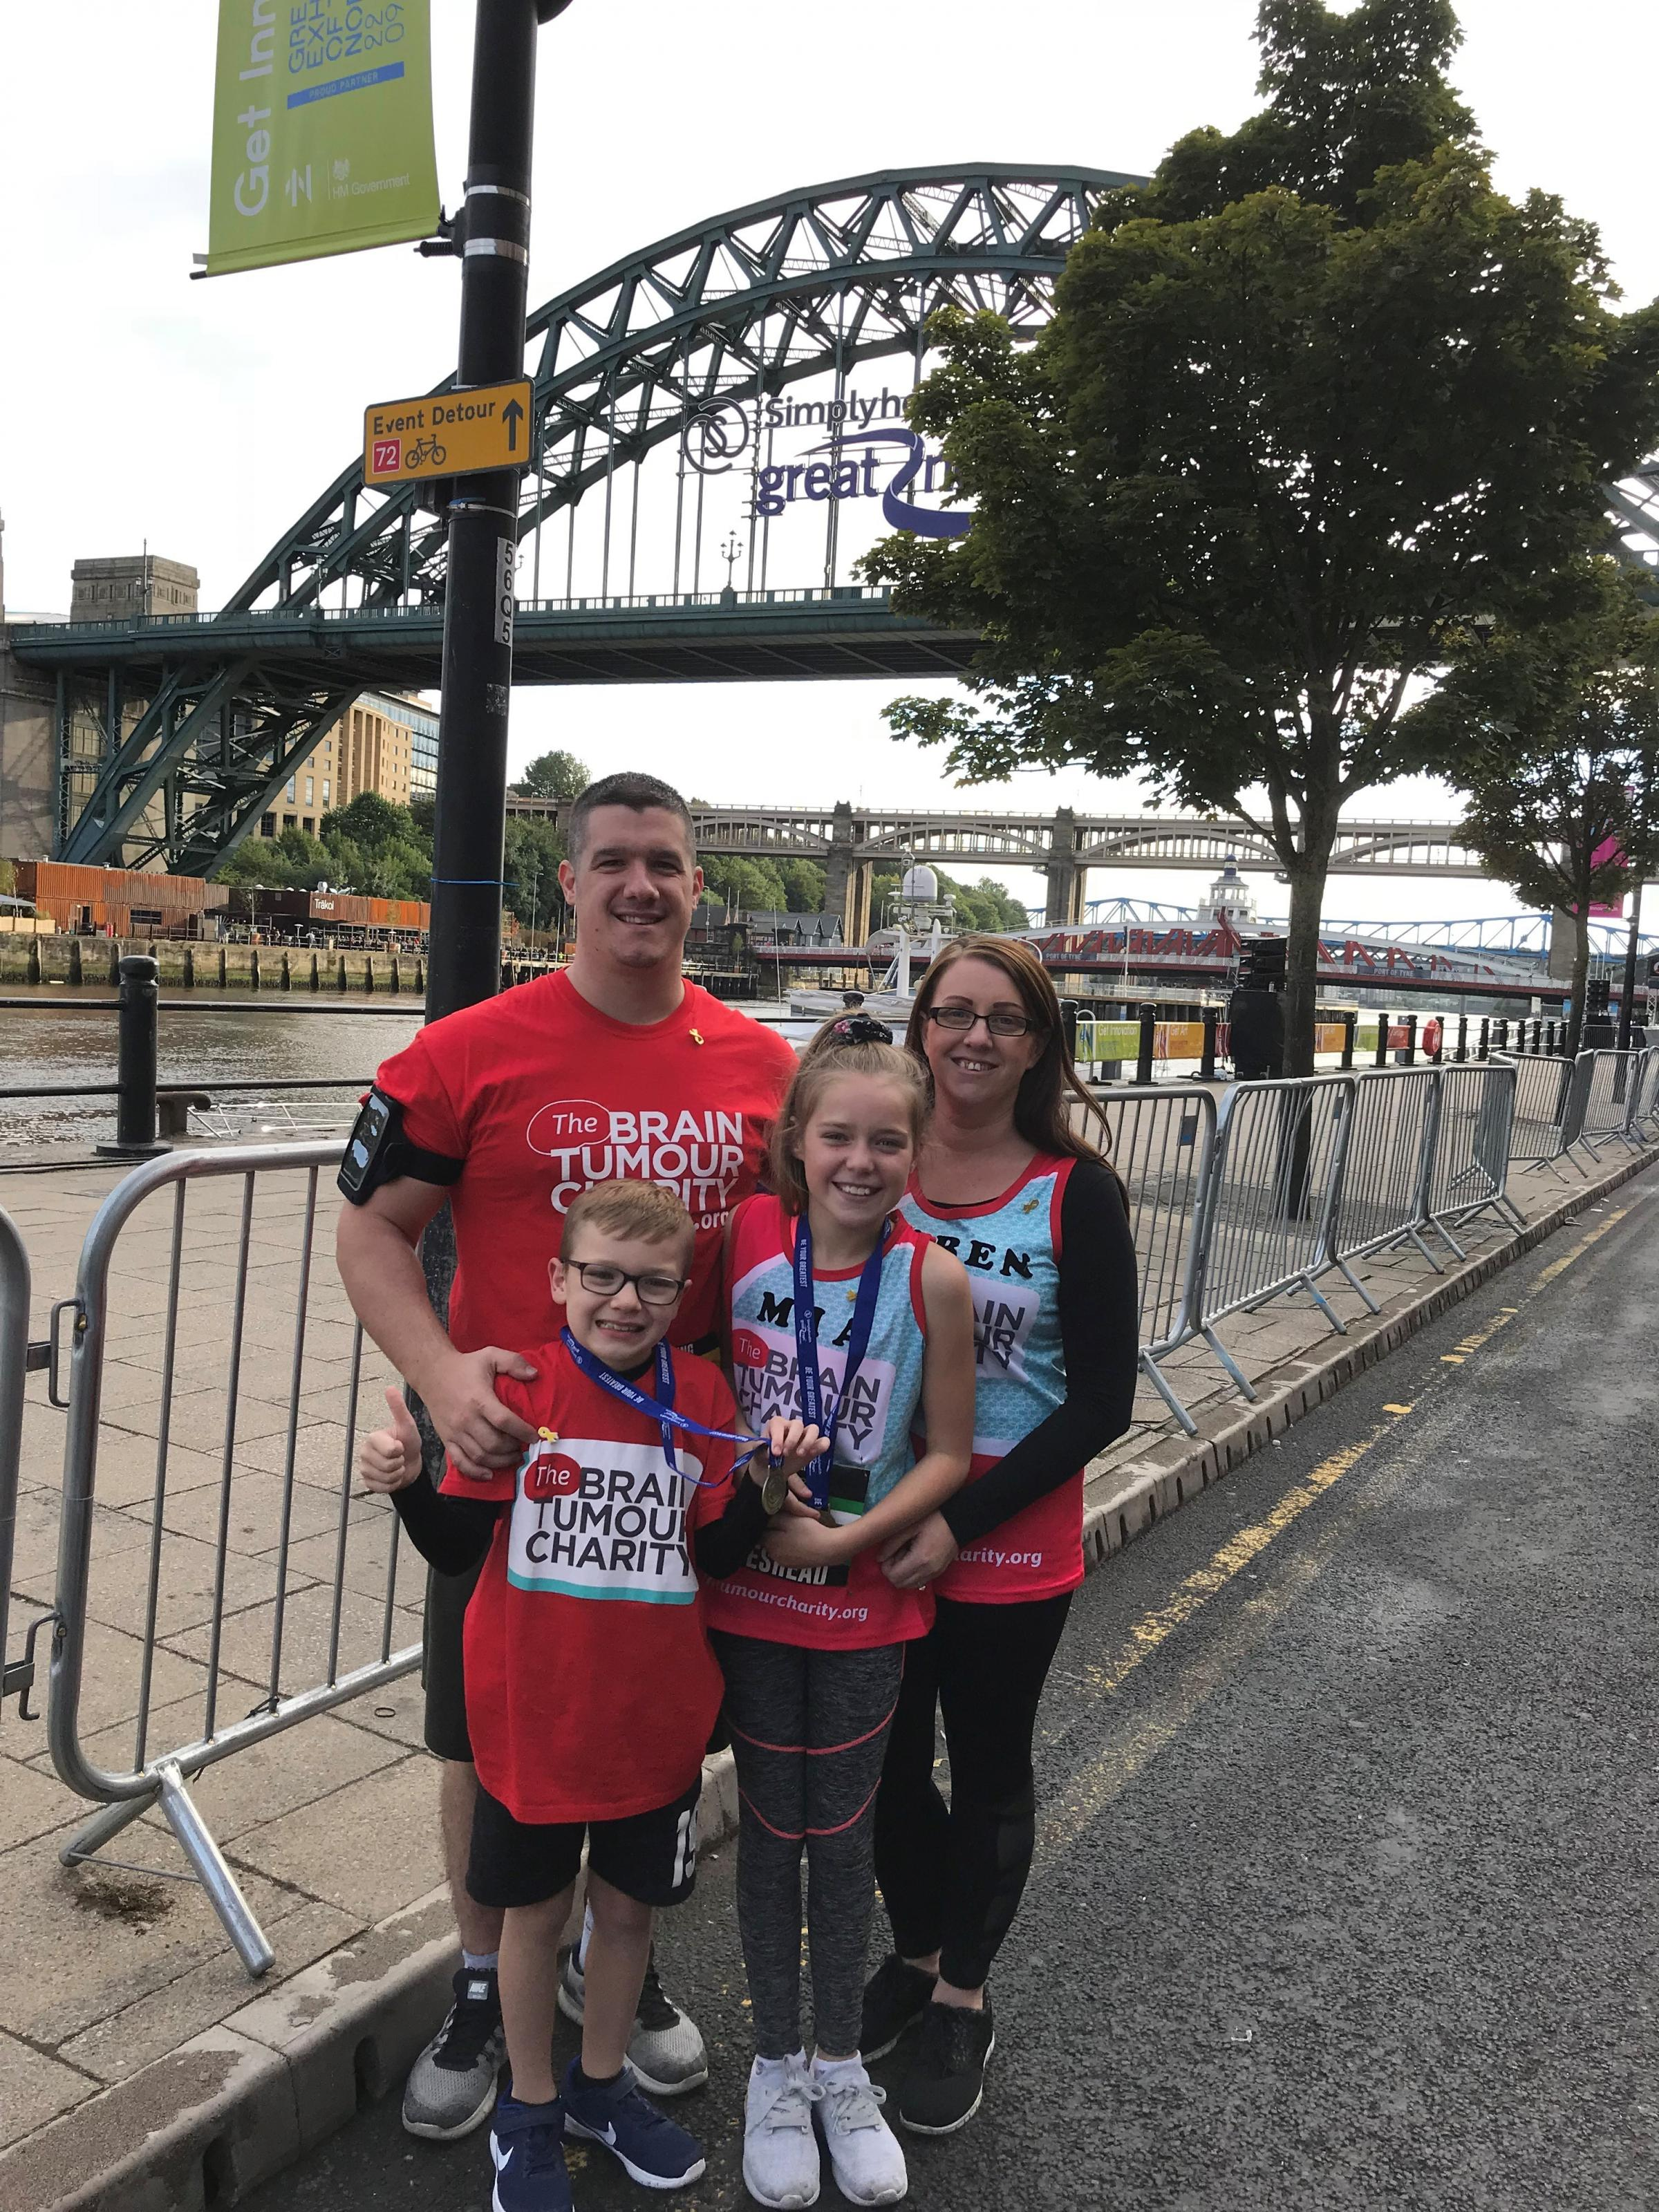 RUN: Aston Sullivan, with his sister, Mia, mum Karen and dad, Thomas Sullivan, in Newcastle after taking part in the Mini Great North Run on Saturday in aid of The Brain Tumour Charity.